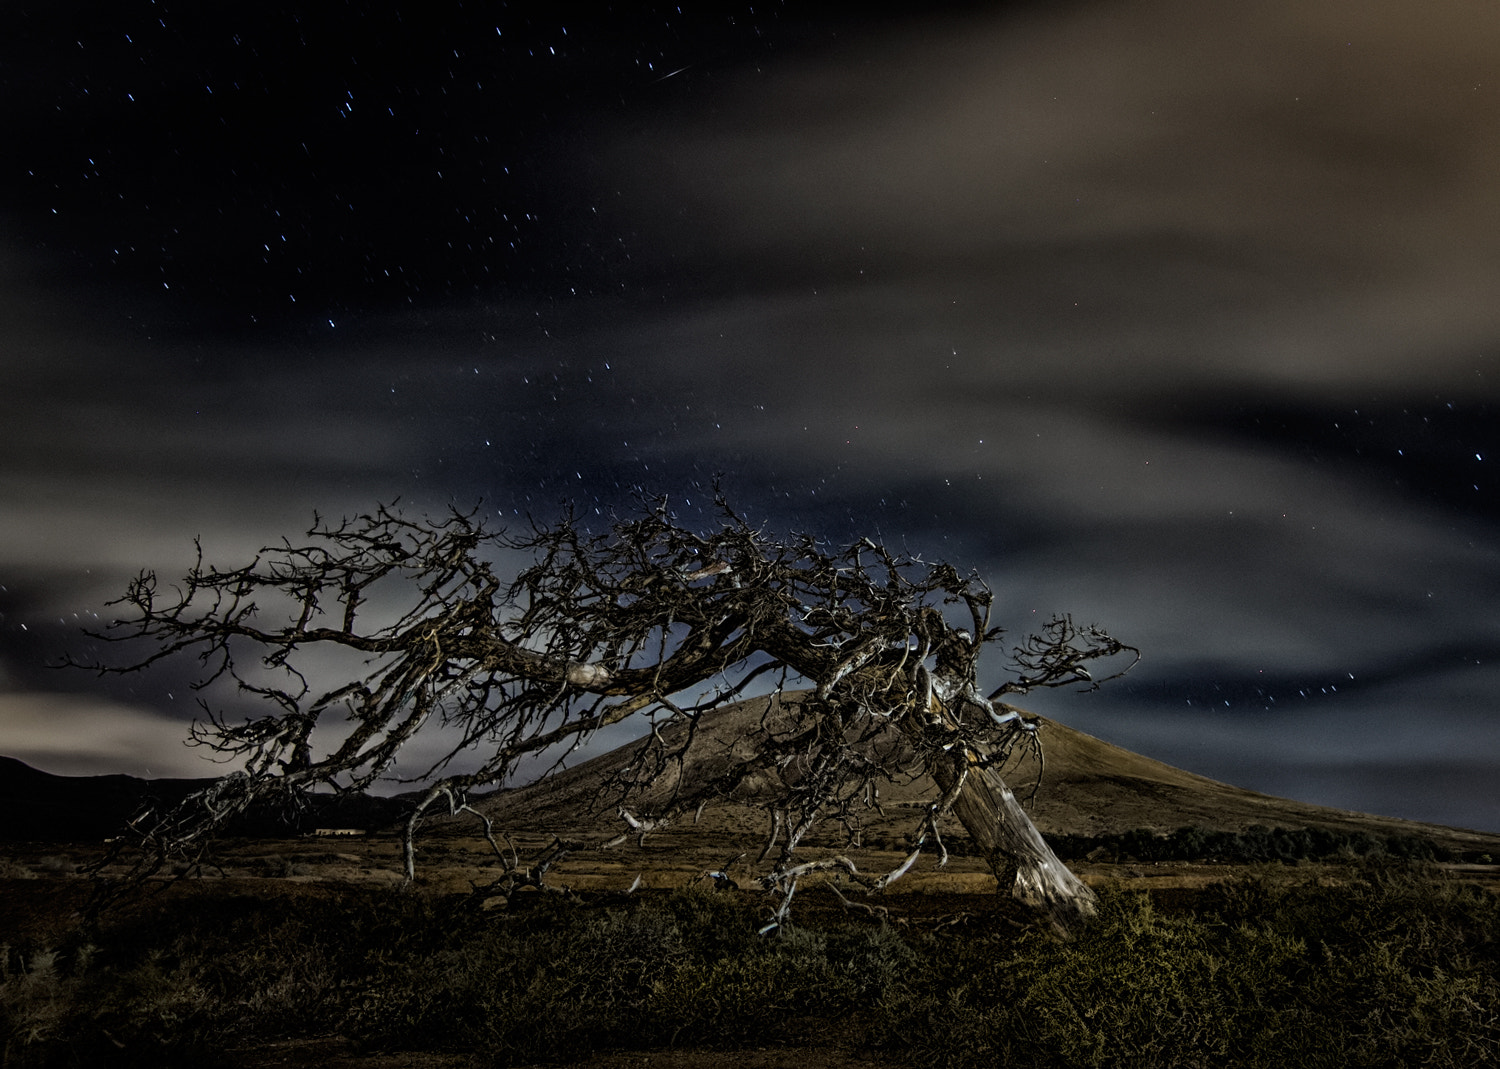 Photograph Darkness. by Pedro López Batista on 500px